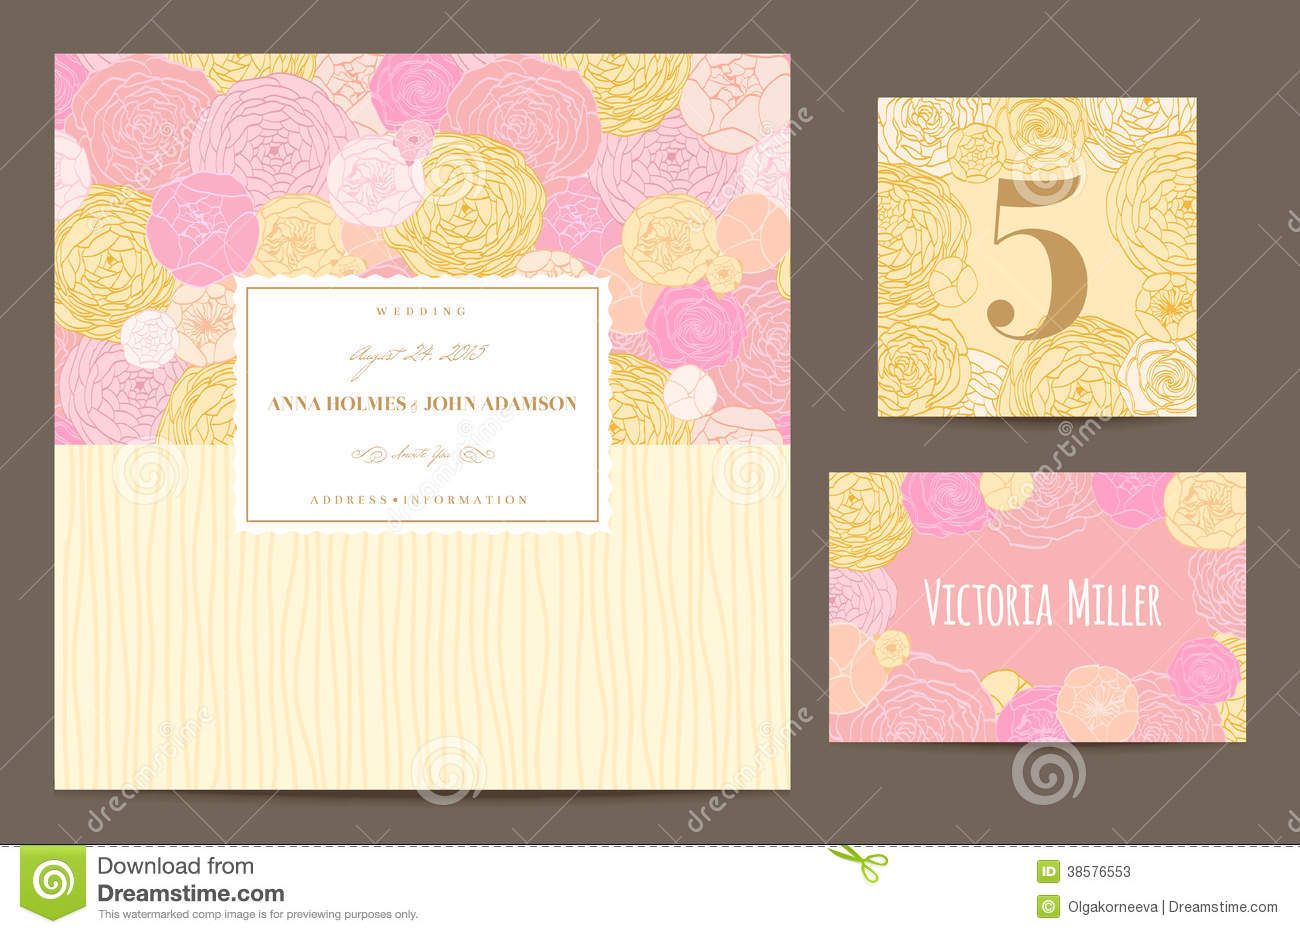 Yellow And Pink Wedding Invitations – guitarreviews.co